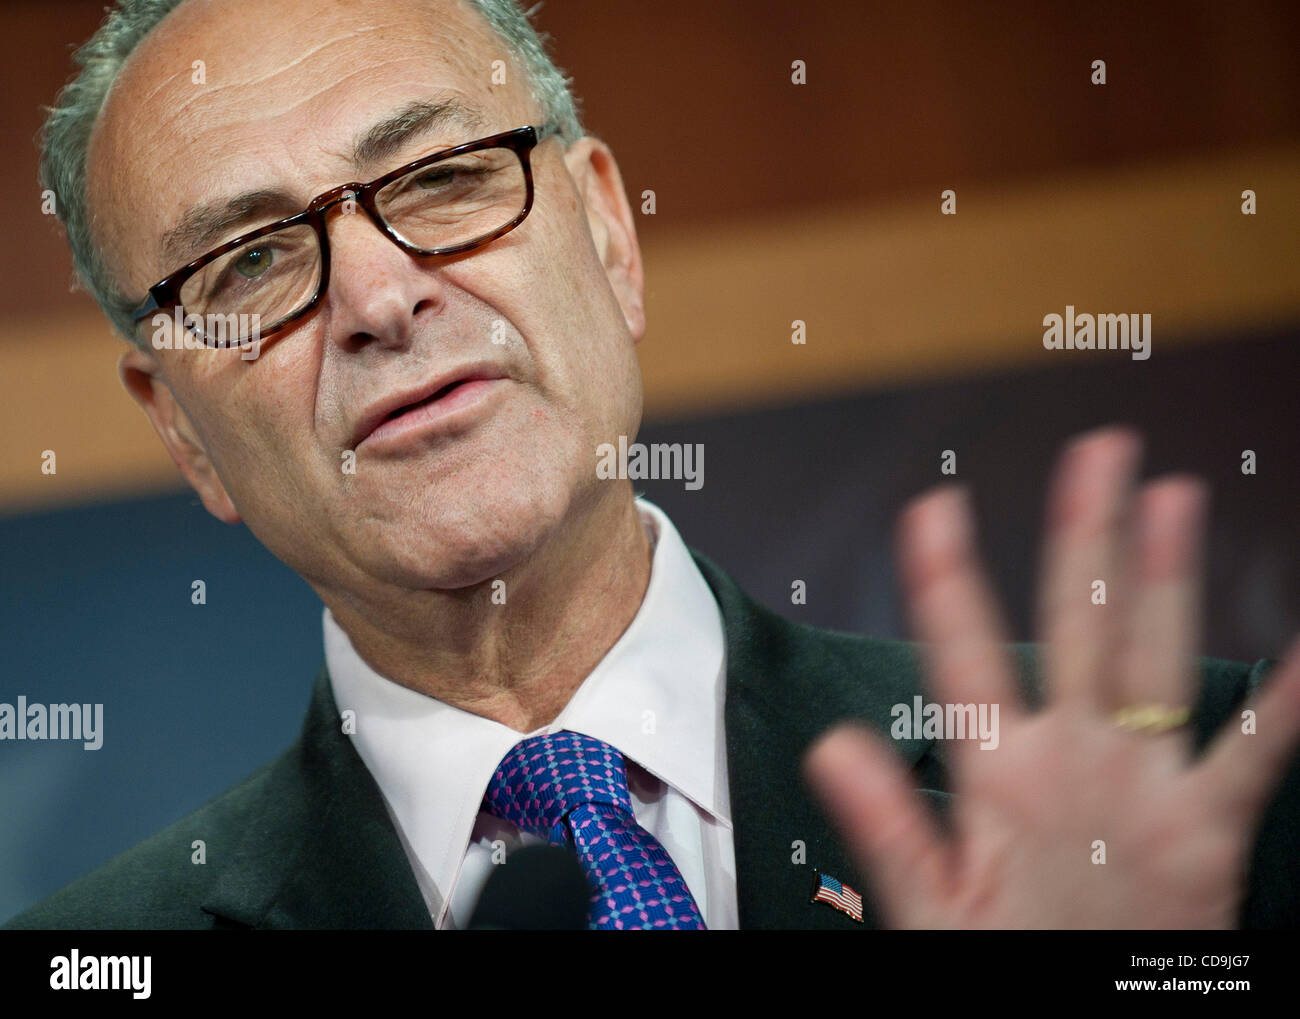 Jul 14, 2010 - Washington, District of Columbia, U.S., -  Senator Charles Schumer speaks to the press urging the - Stock Image